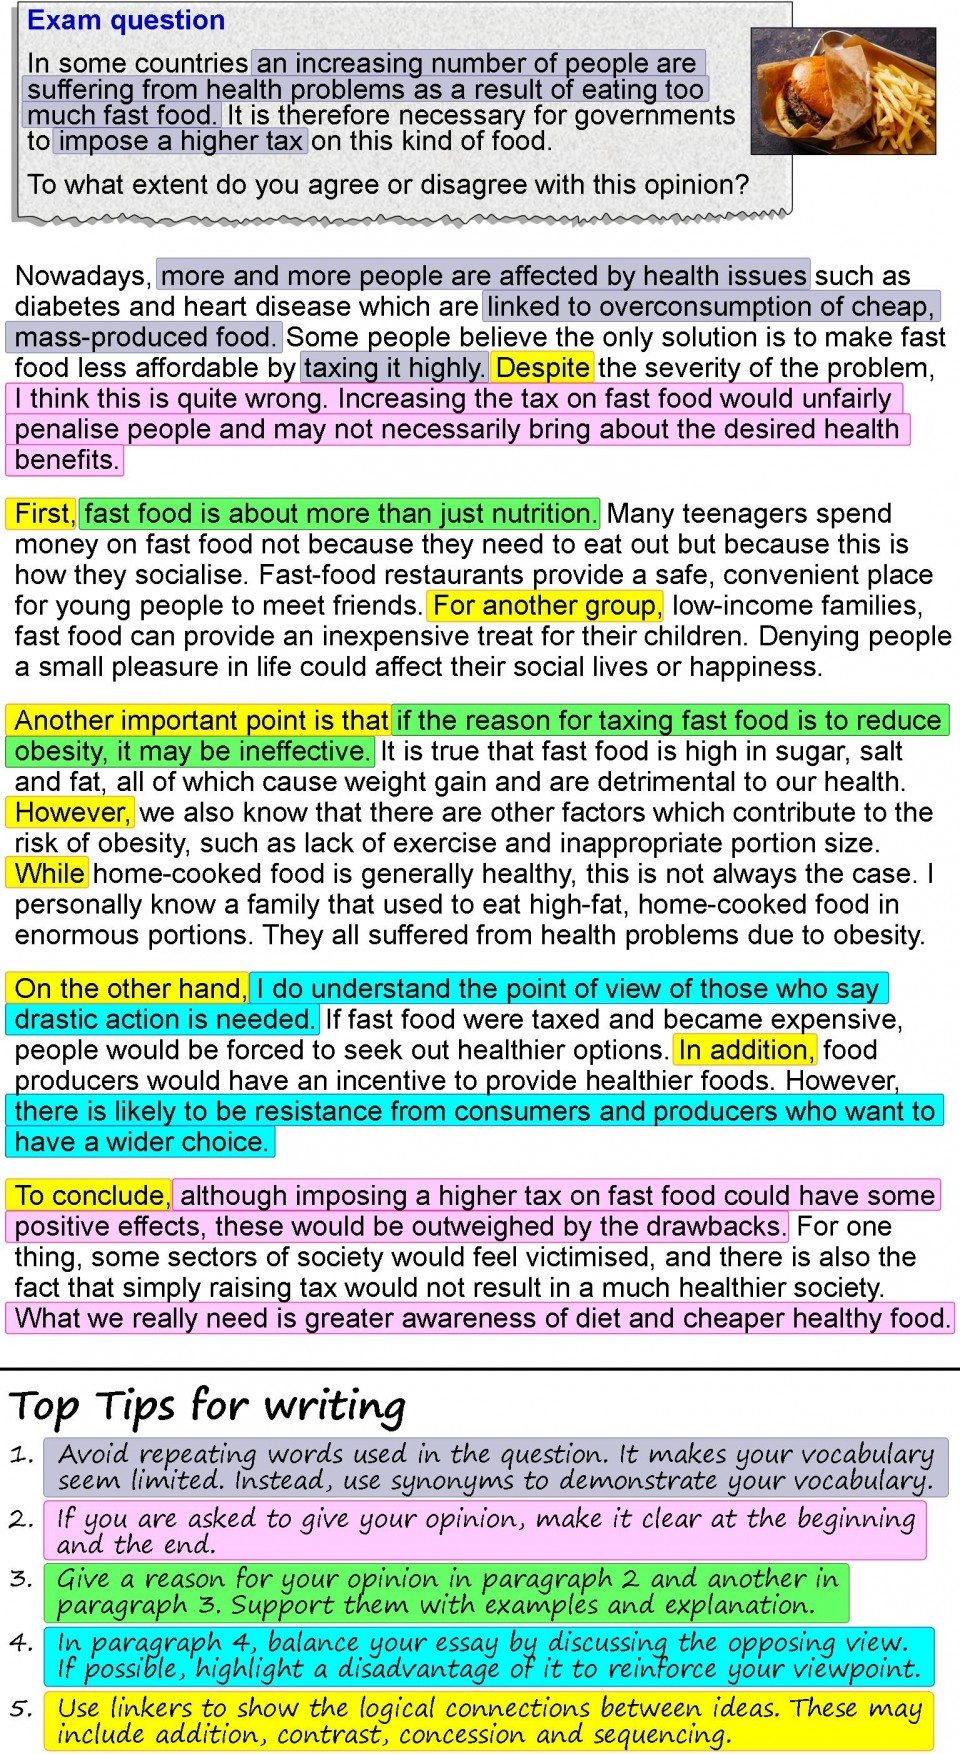 001 Opinion Essay About Fast Food Example An 4 Unbelievable British Council Is A Good Alternative To Cooking For Yourself 960